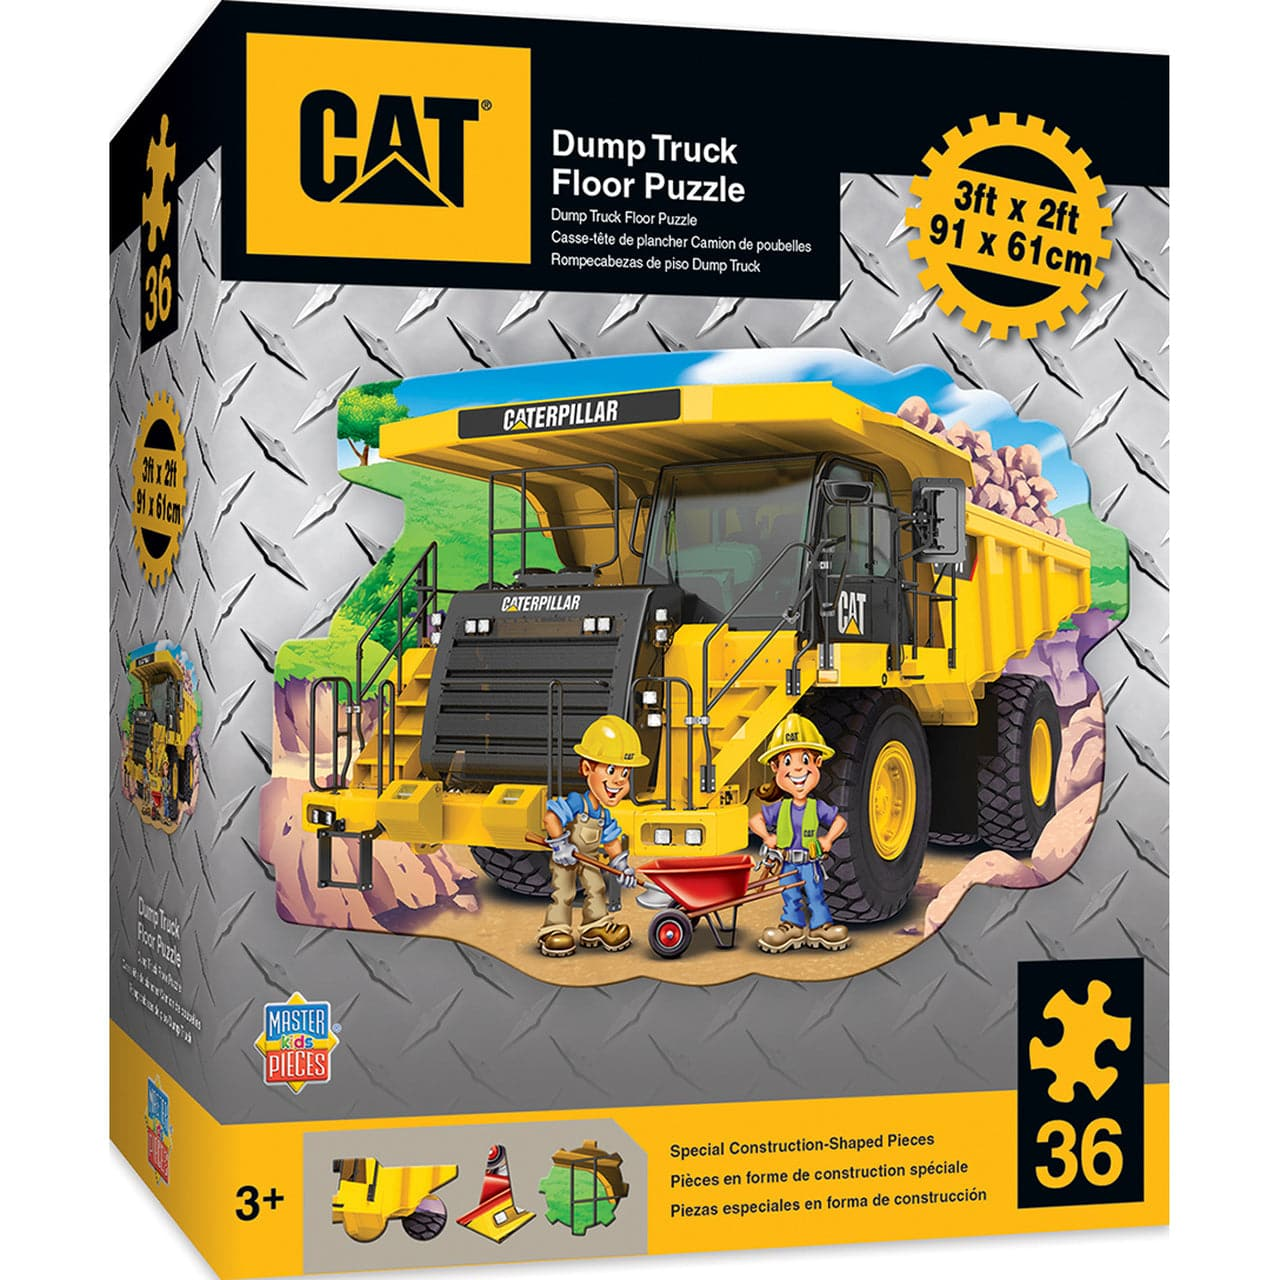 Caterpillar - Dump Truck Shaped Floor Puzzle - 36 Piece Puzzle